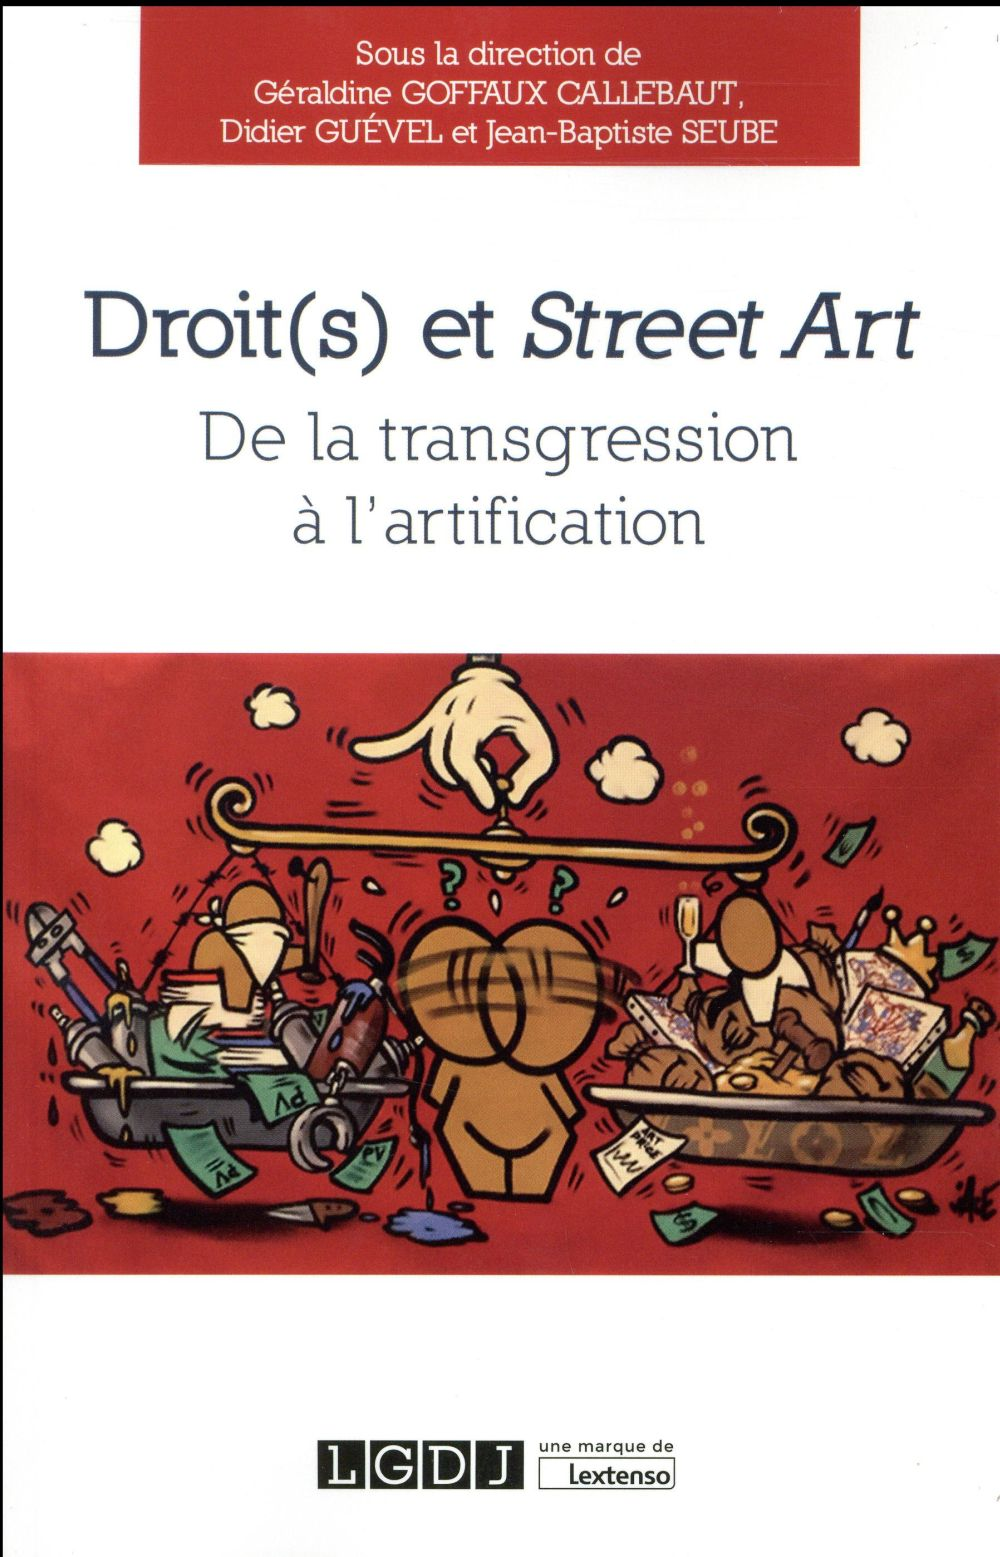 Droit(s) et street art ; de la transgression à l'artification